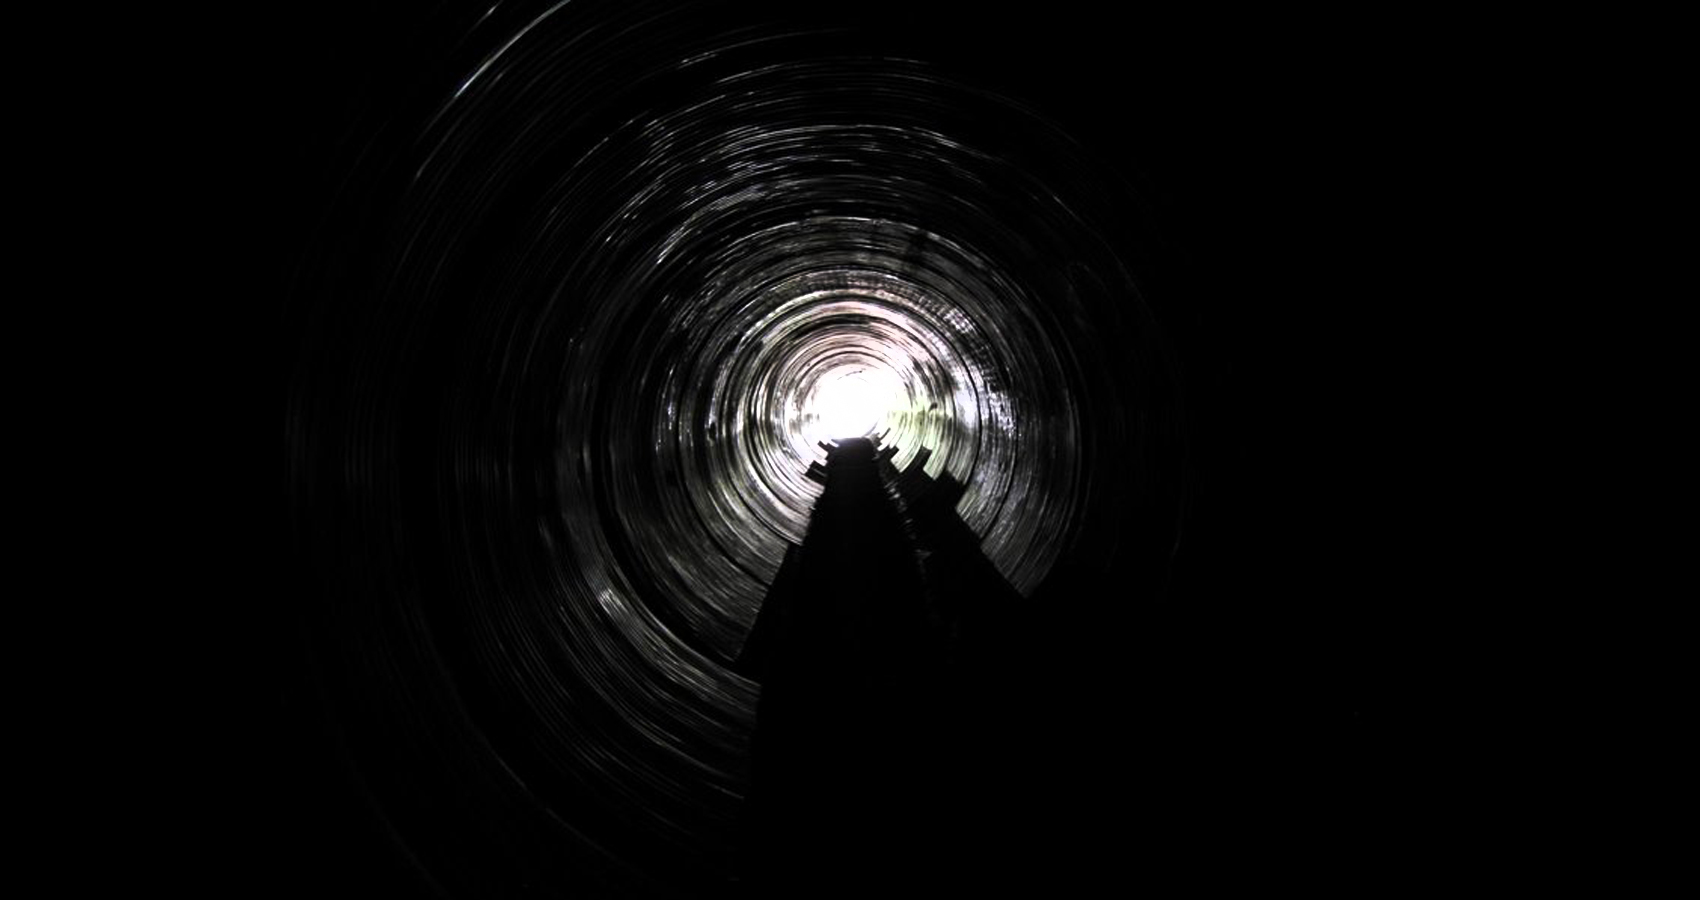 The Light At The End of The Tunnel by Poetanp at Spillwords.com